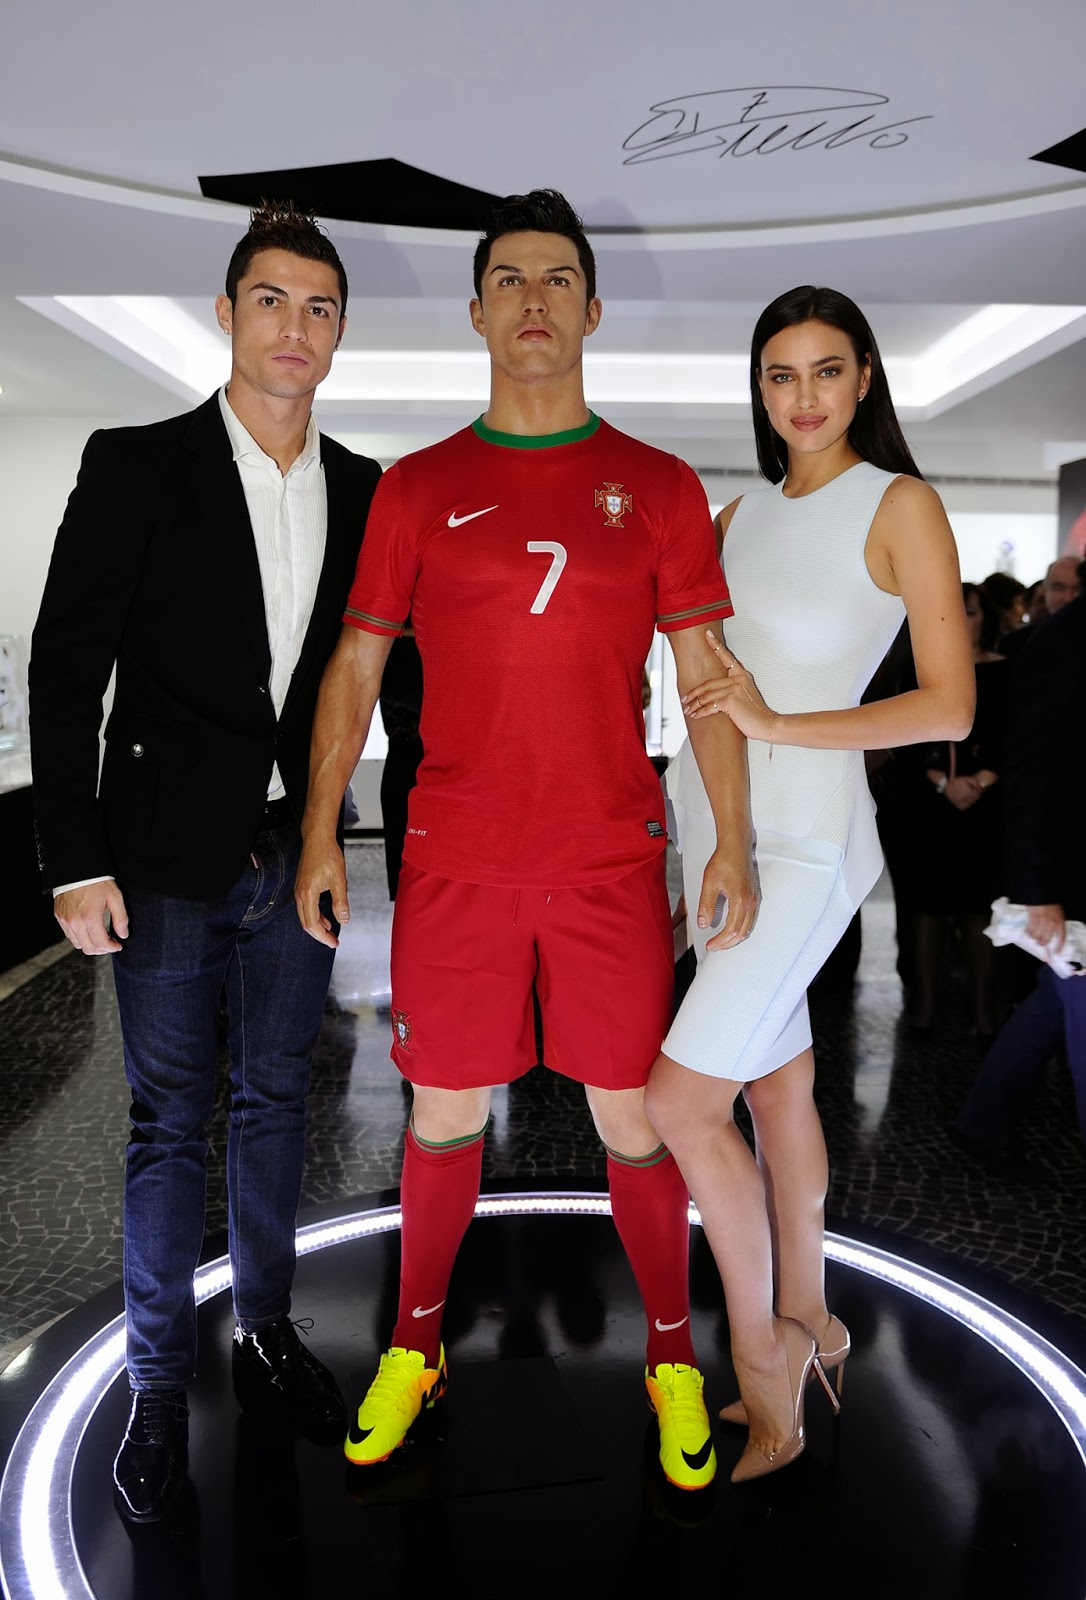 Awards, CR7 Museum, Cristiano Ronaldo, Fans, Football, Footballer, FPT, Girlfriend, Golden Boot, Golden Shoe, Honour, Irina Shayk, Madeira, Museum, Portugal, Sculpture, Sports, Trophy, Unveil, Wax,